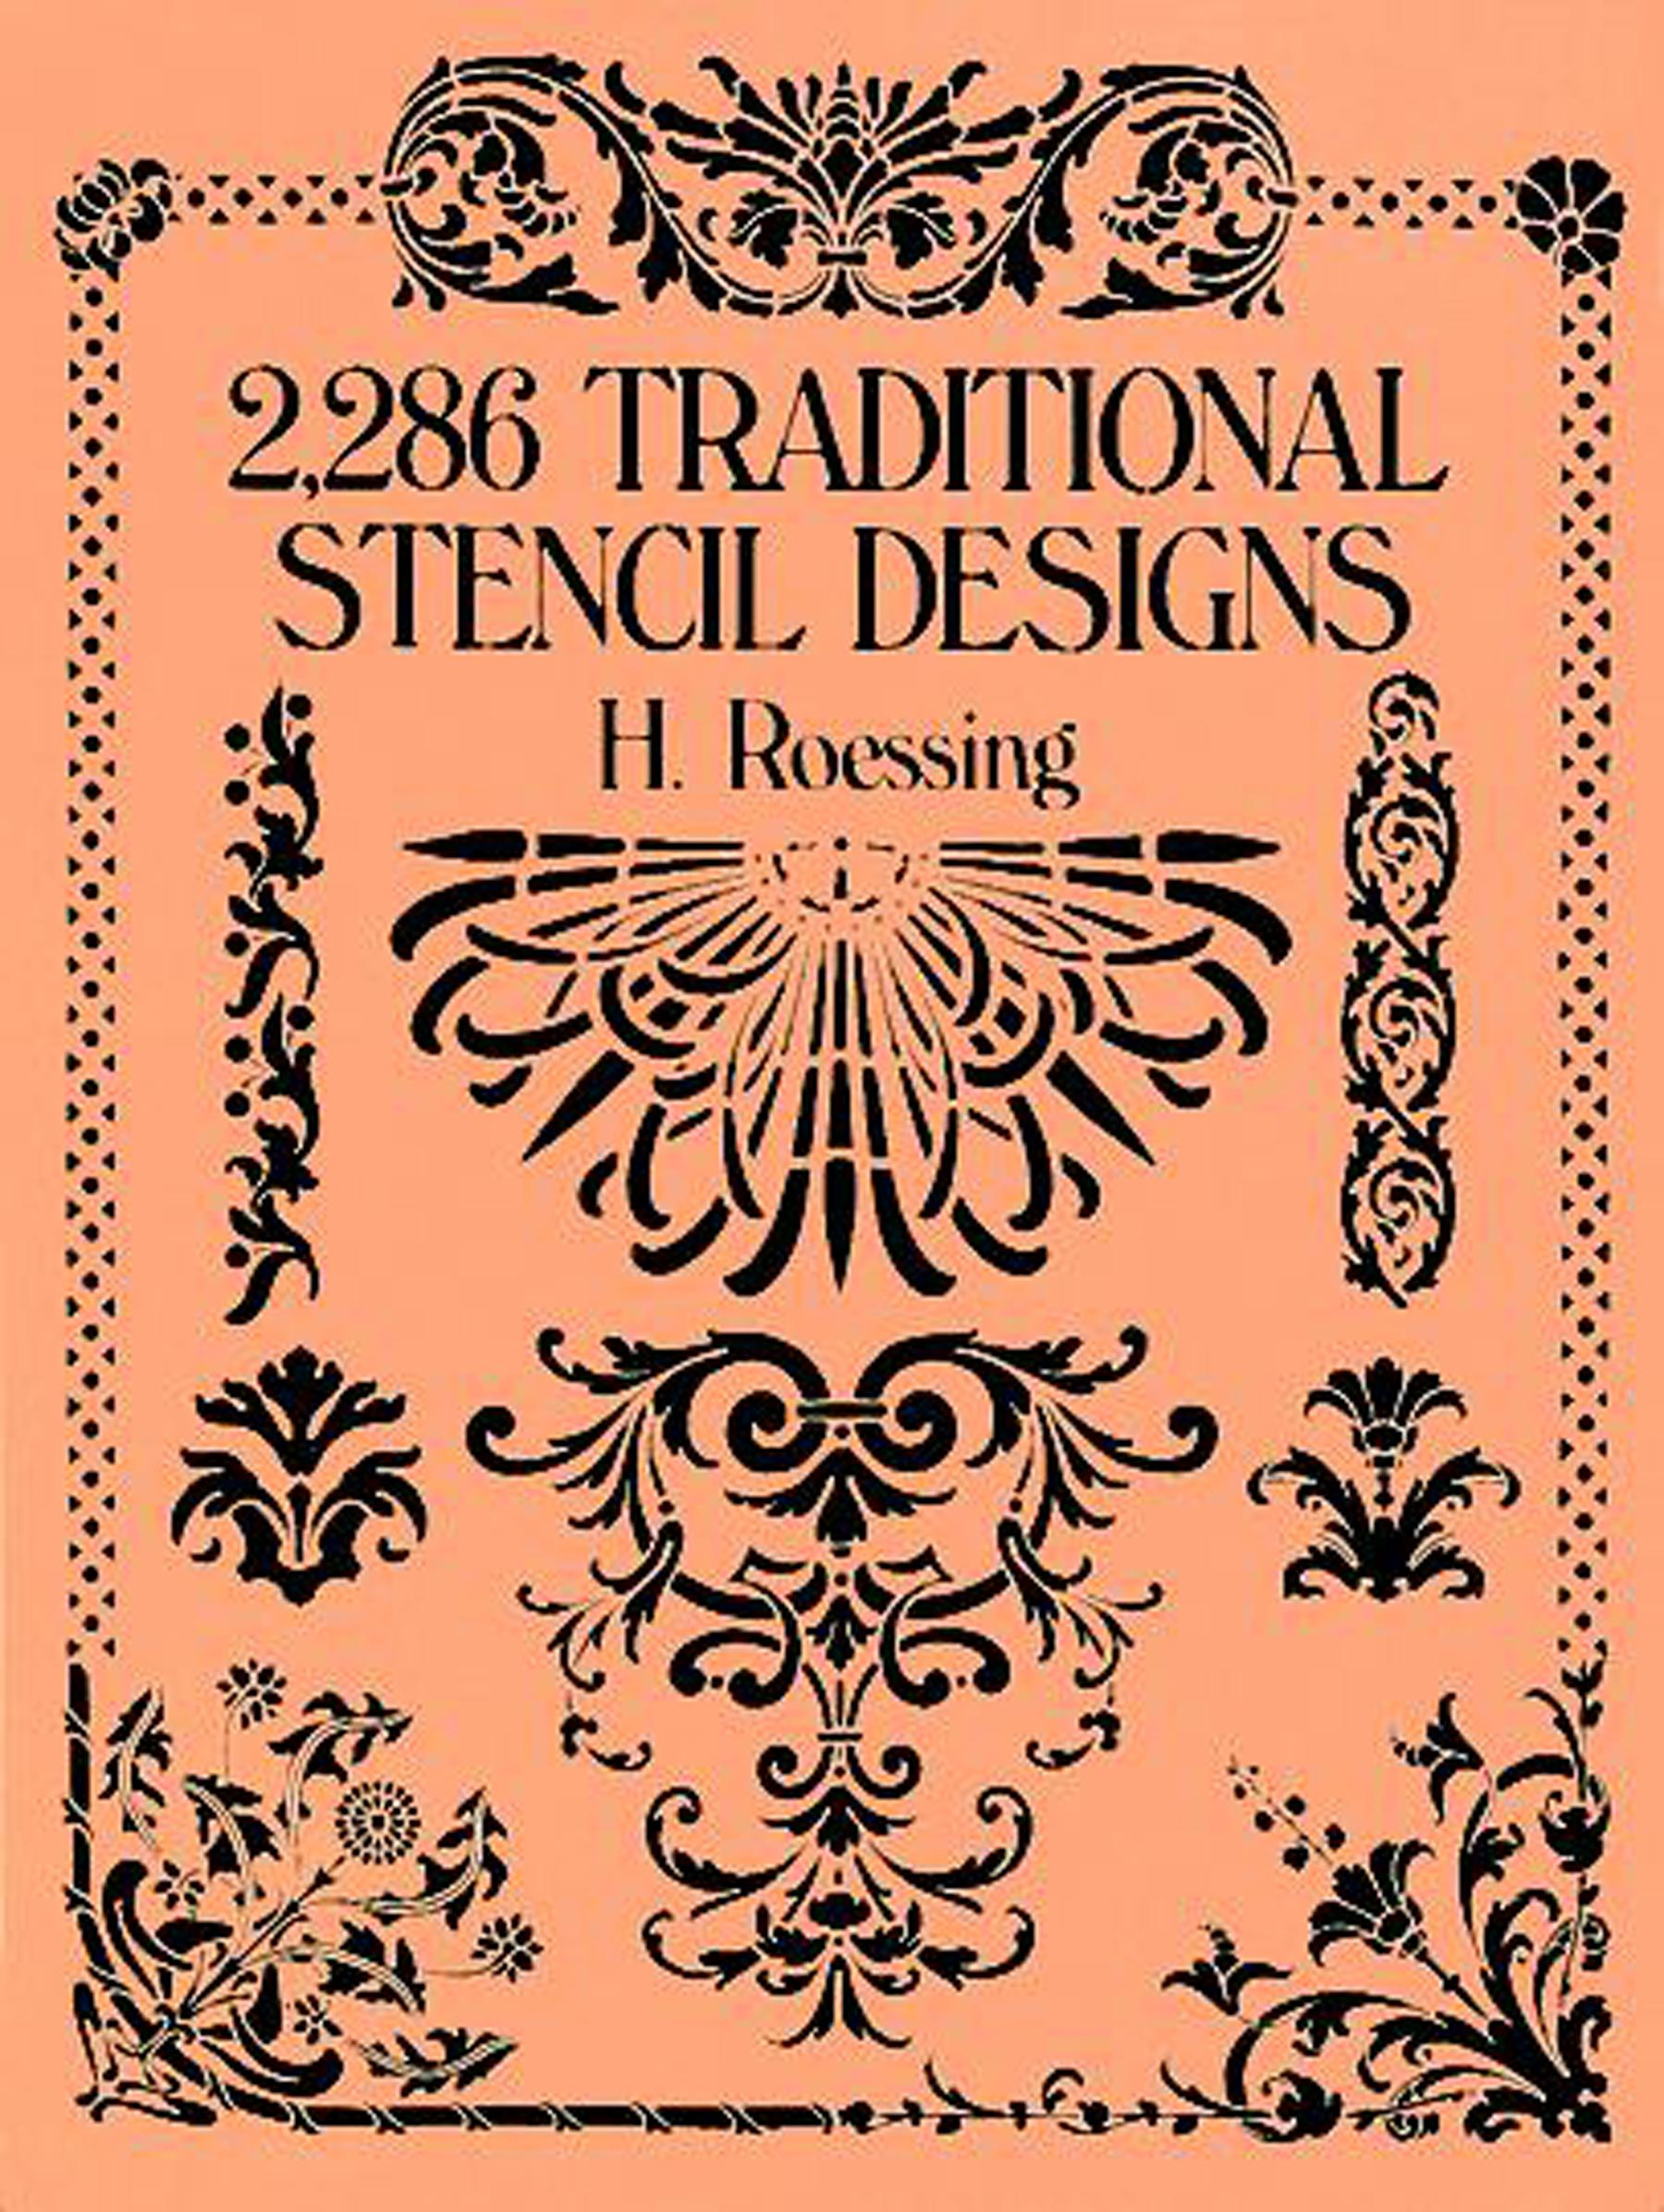 2 286 Traditional Stencil Designs Dover Pictorial Archive H Roessing on Amazoncom FREE shipping on qualifying offers Before the widespread development of